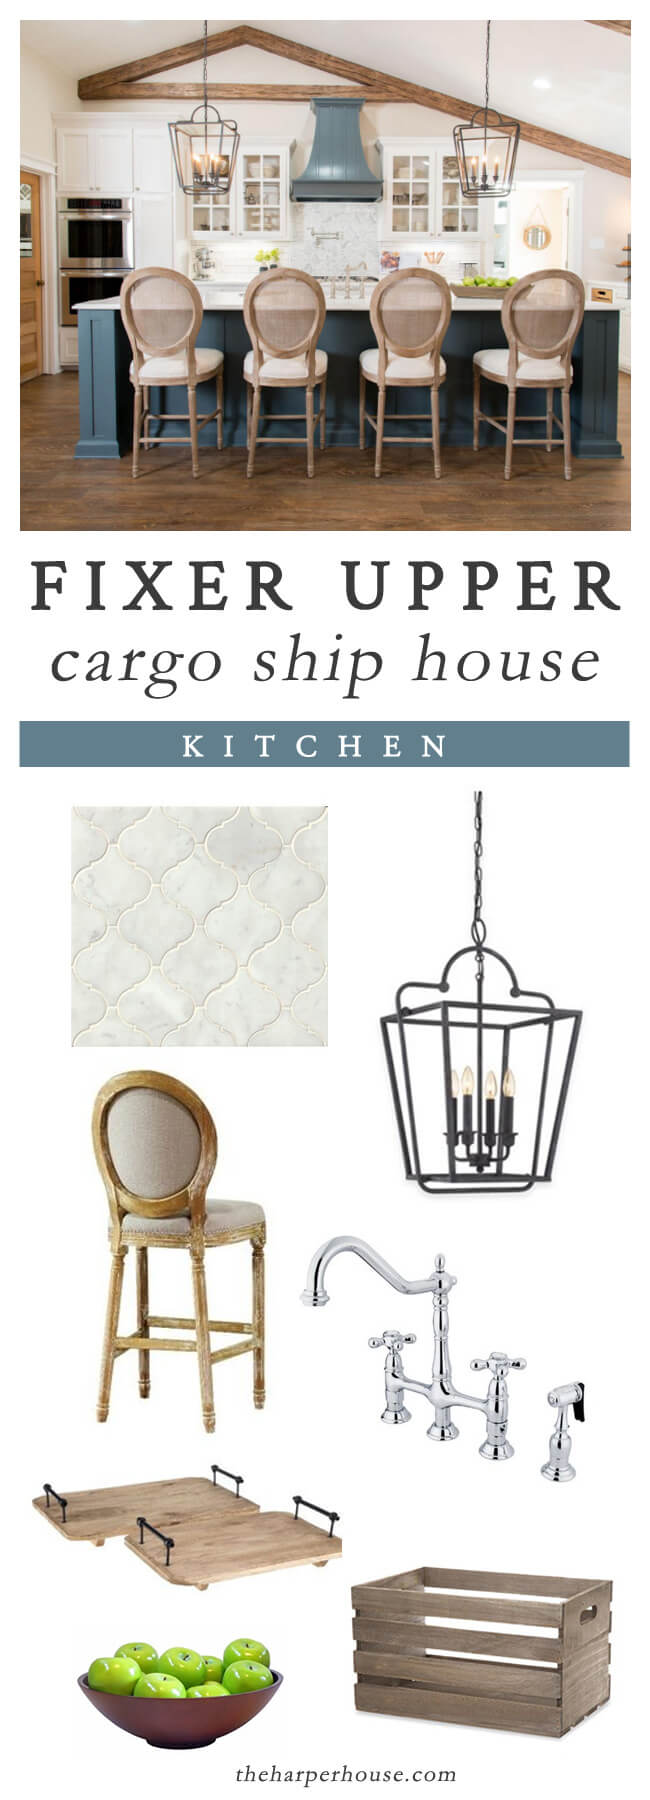 FIXER UPPER Season 4 Episode 1: Cargo Ship House